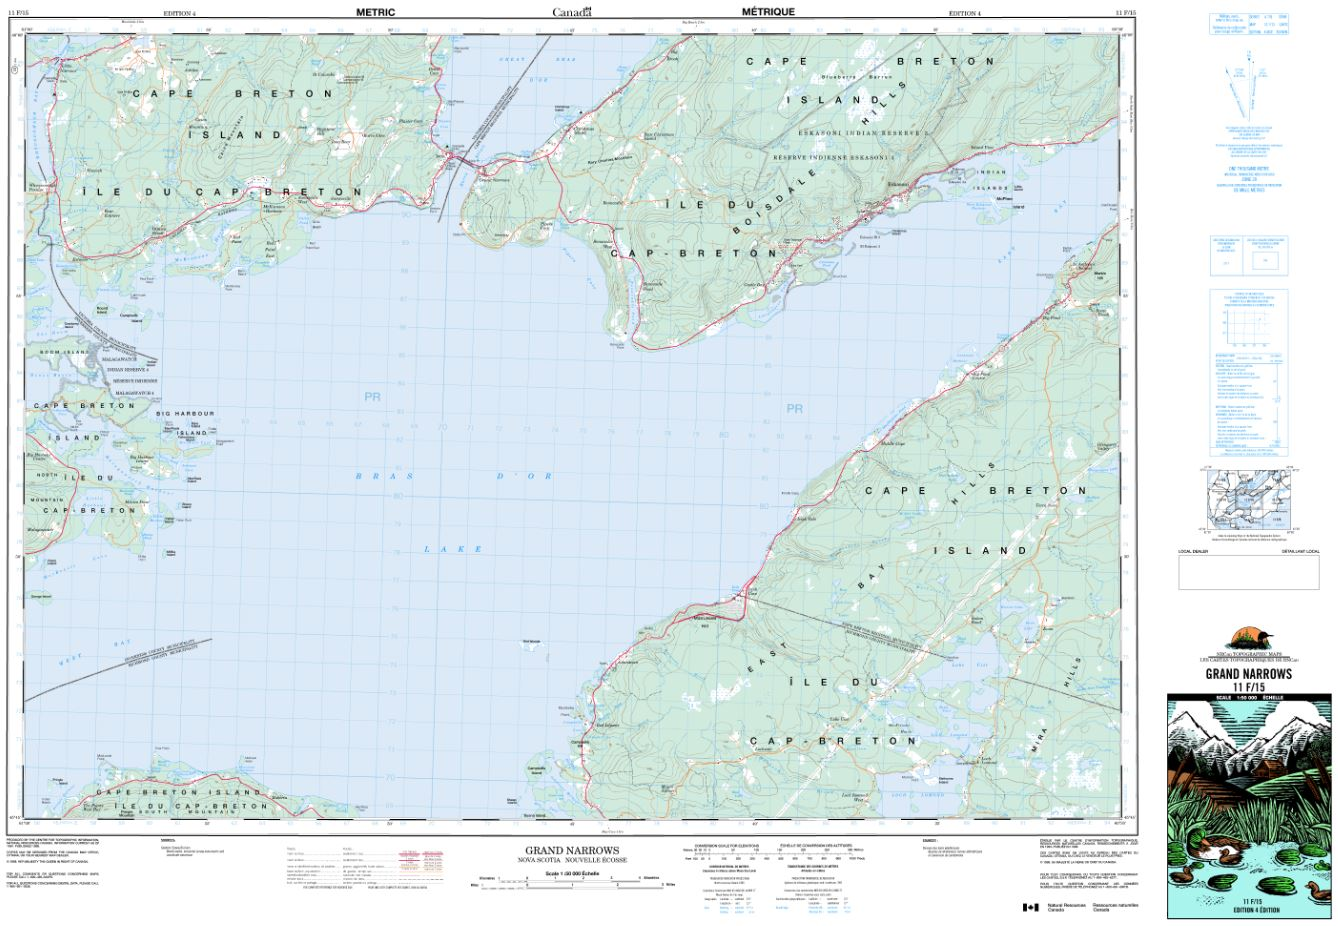 11F/15 Grand Narrows Topographic Map Nova Scotia Tyvek